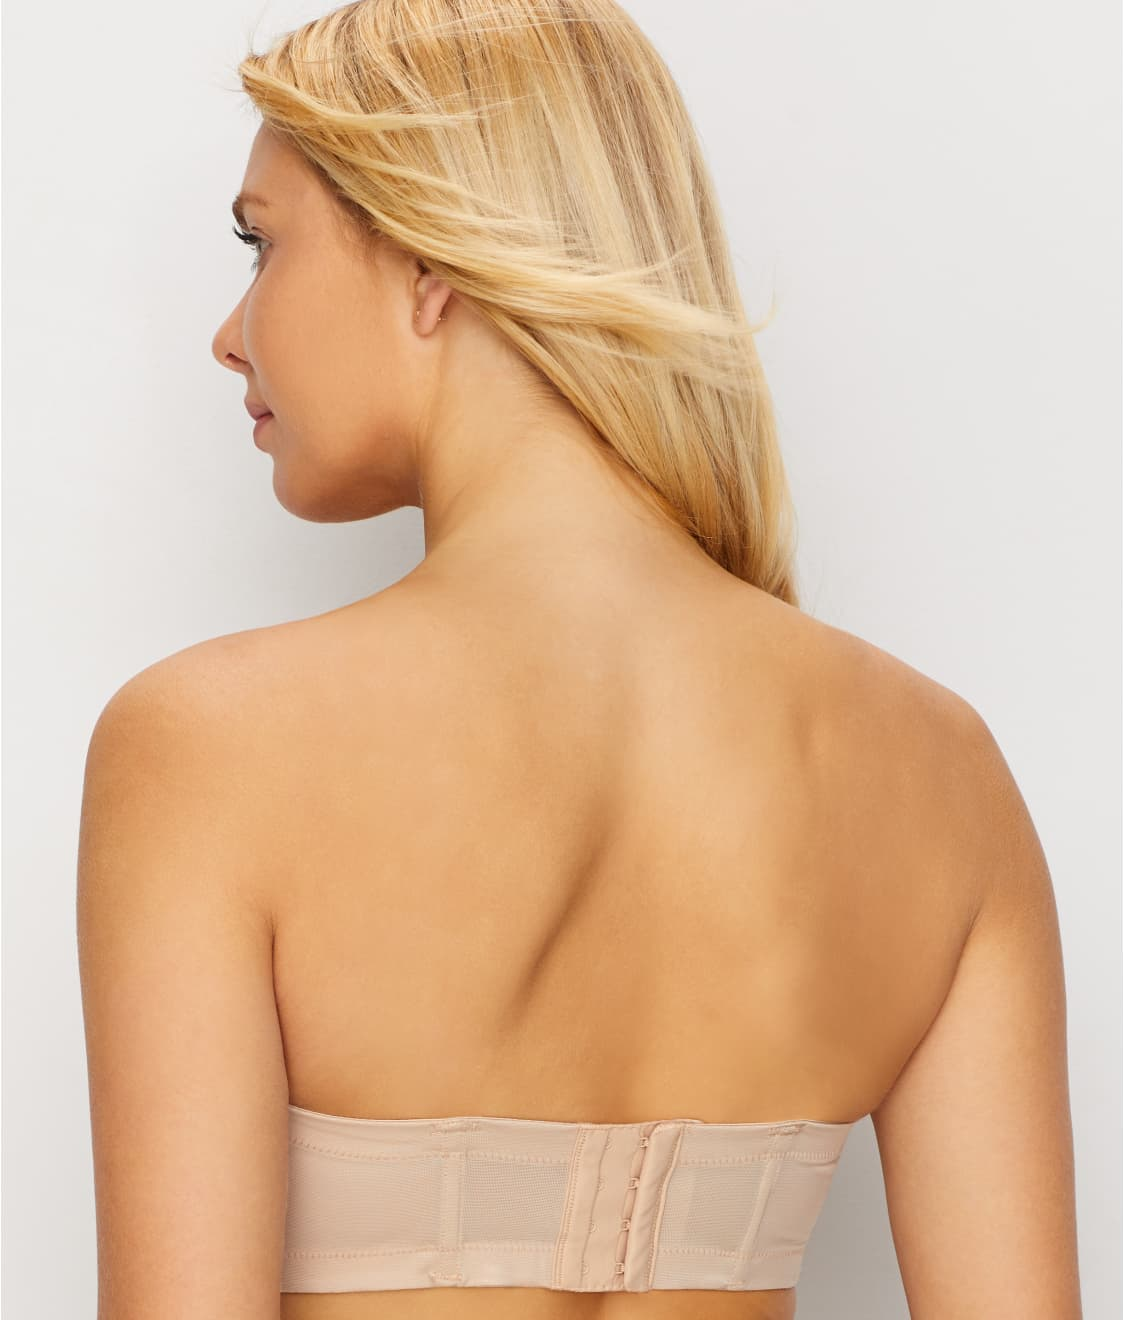 447f80d37a1 See Red Carpet Strapless Bra in Sand